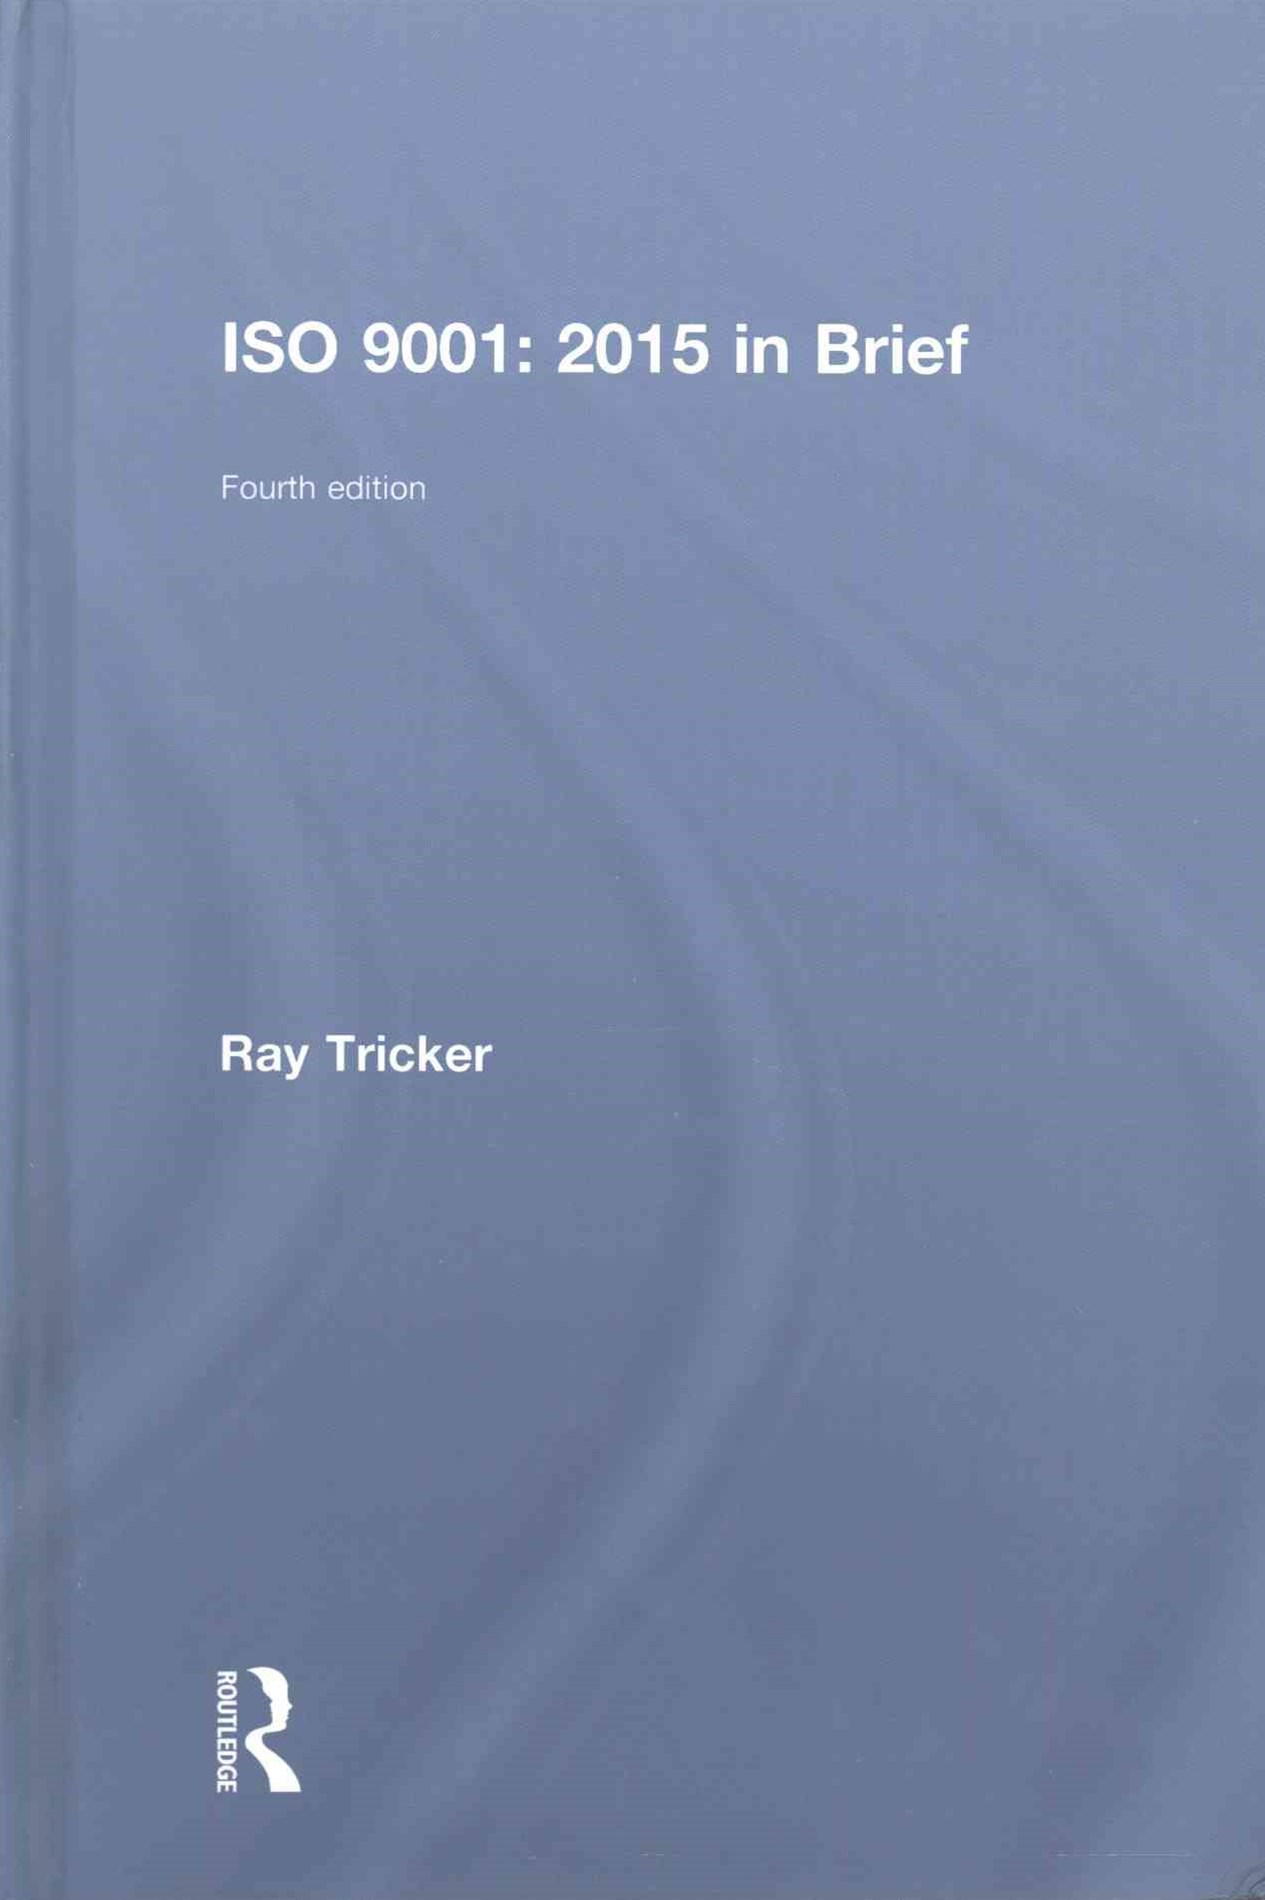 ISO 9001: 2015 in Brief